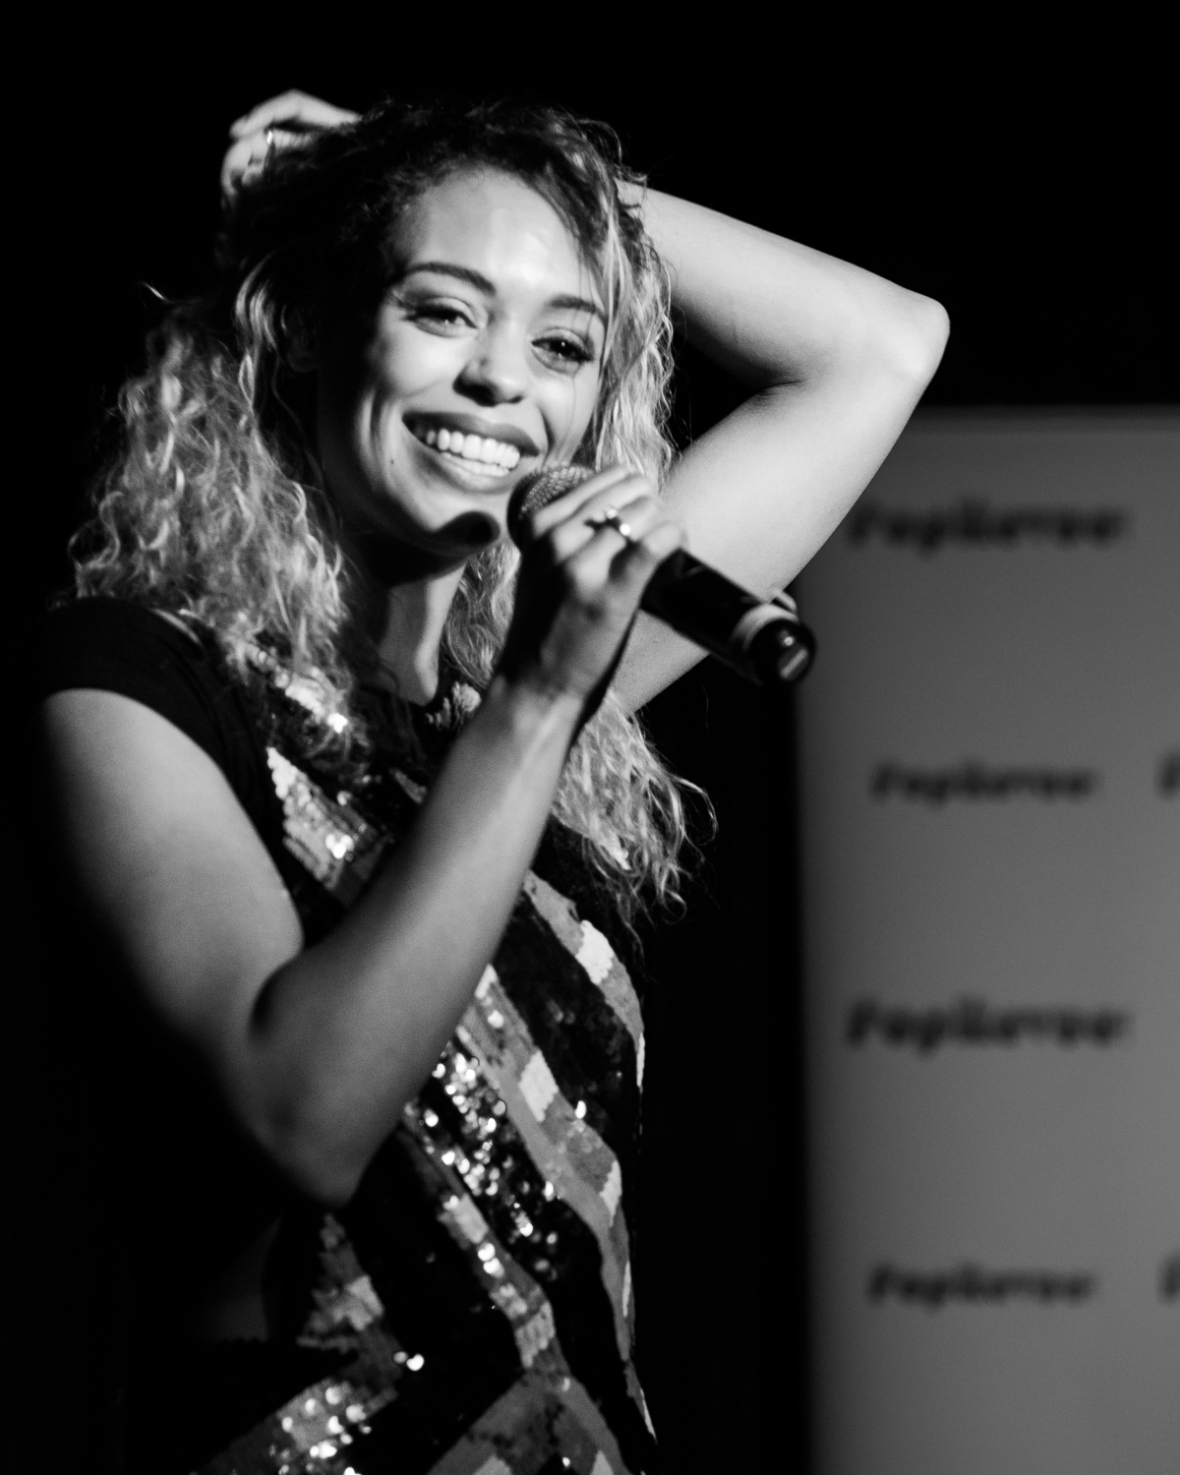 Elizabeth Ajao performs at Pop Revue, London